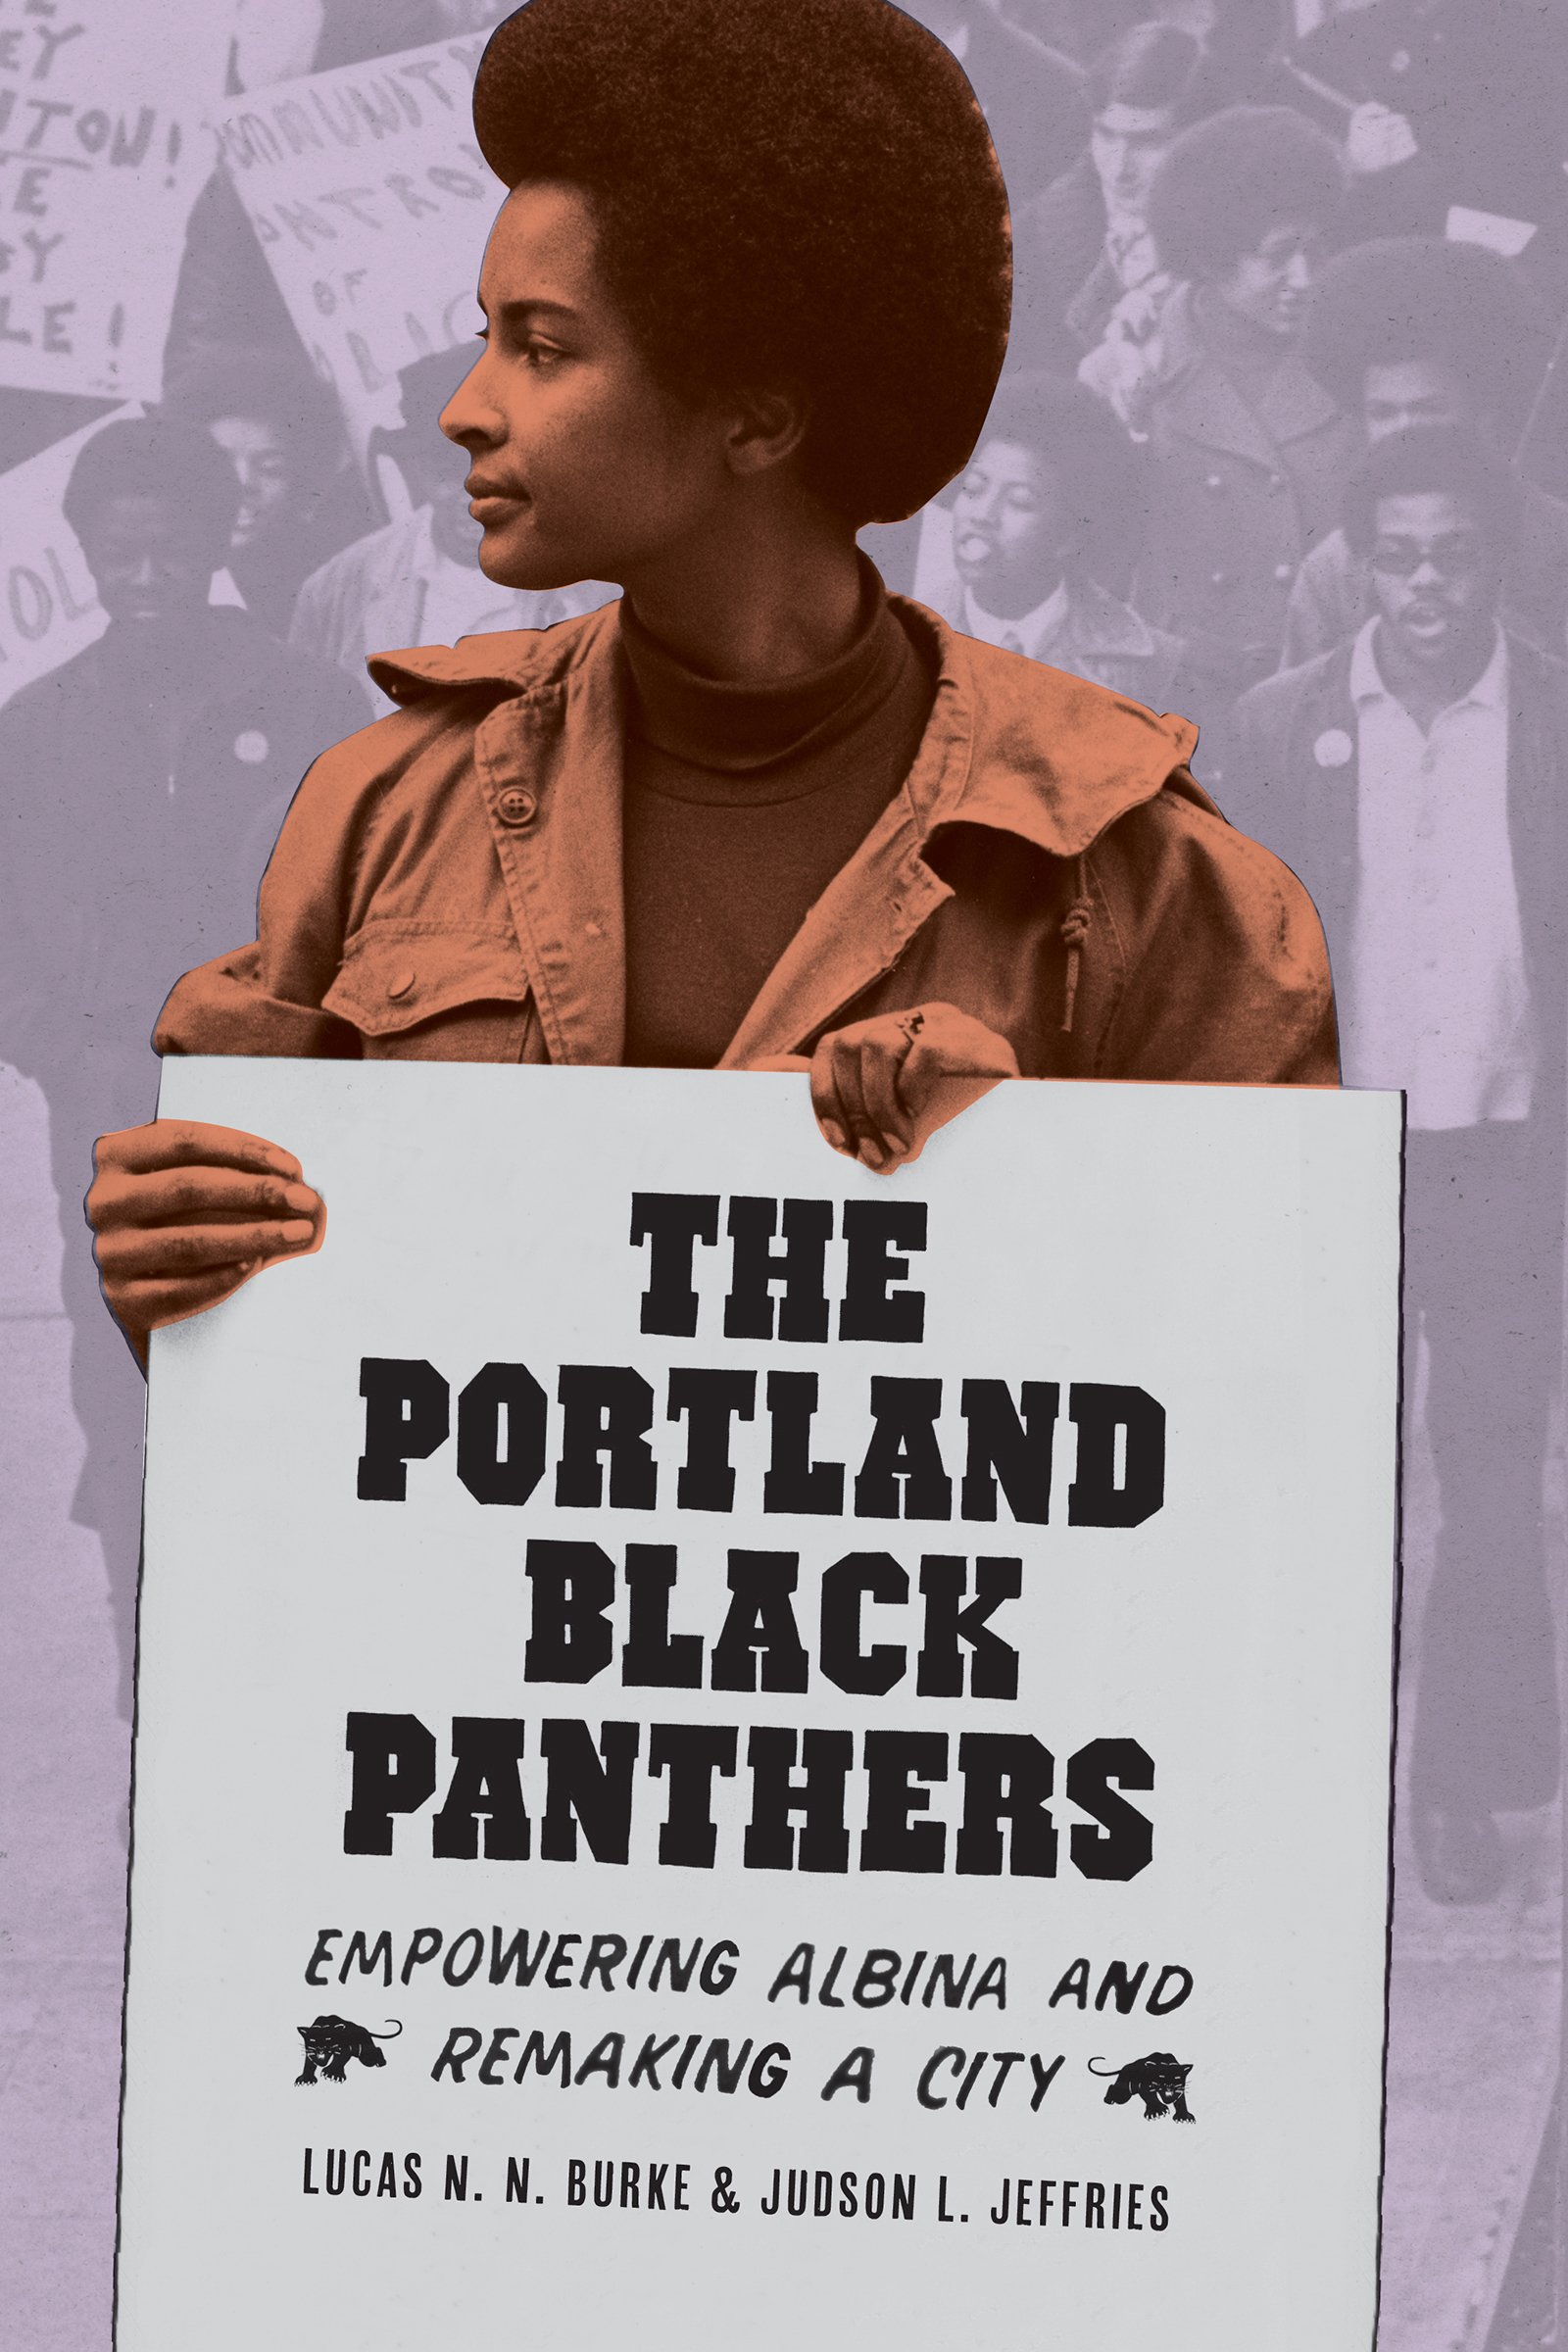 The Portland Black Panthers: Empowering Albina and Remaking a City (V Ethel Willis White Books) PDF